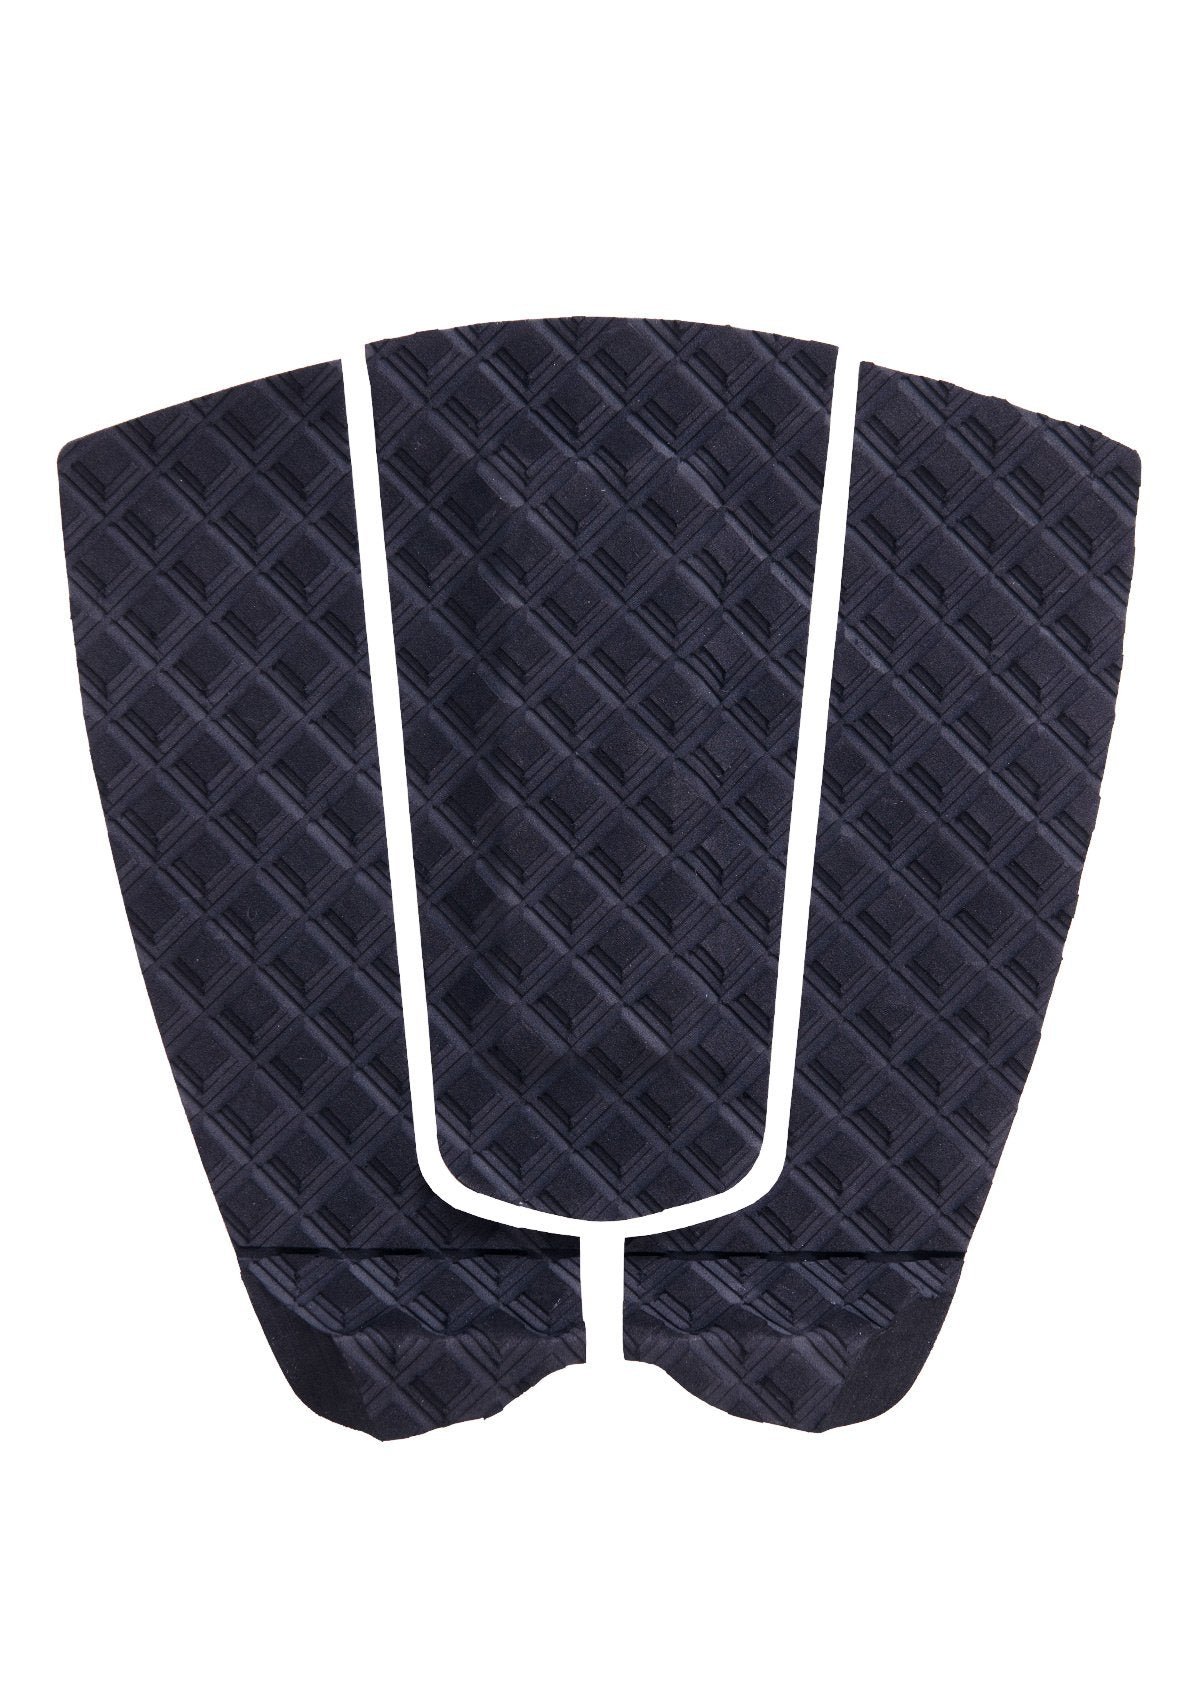 3 Piece Surfboard Traction Pad